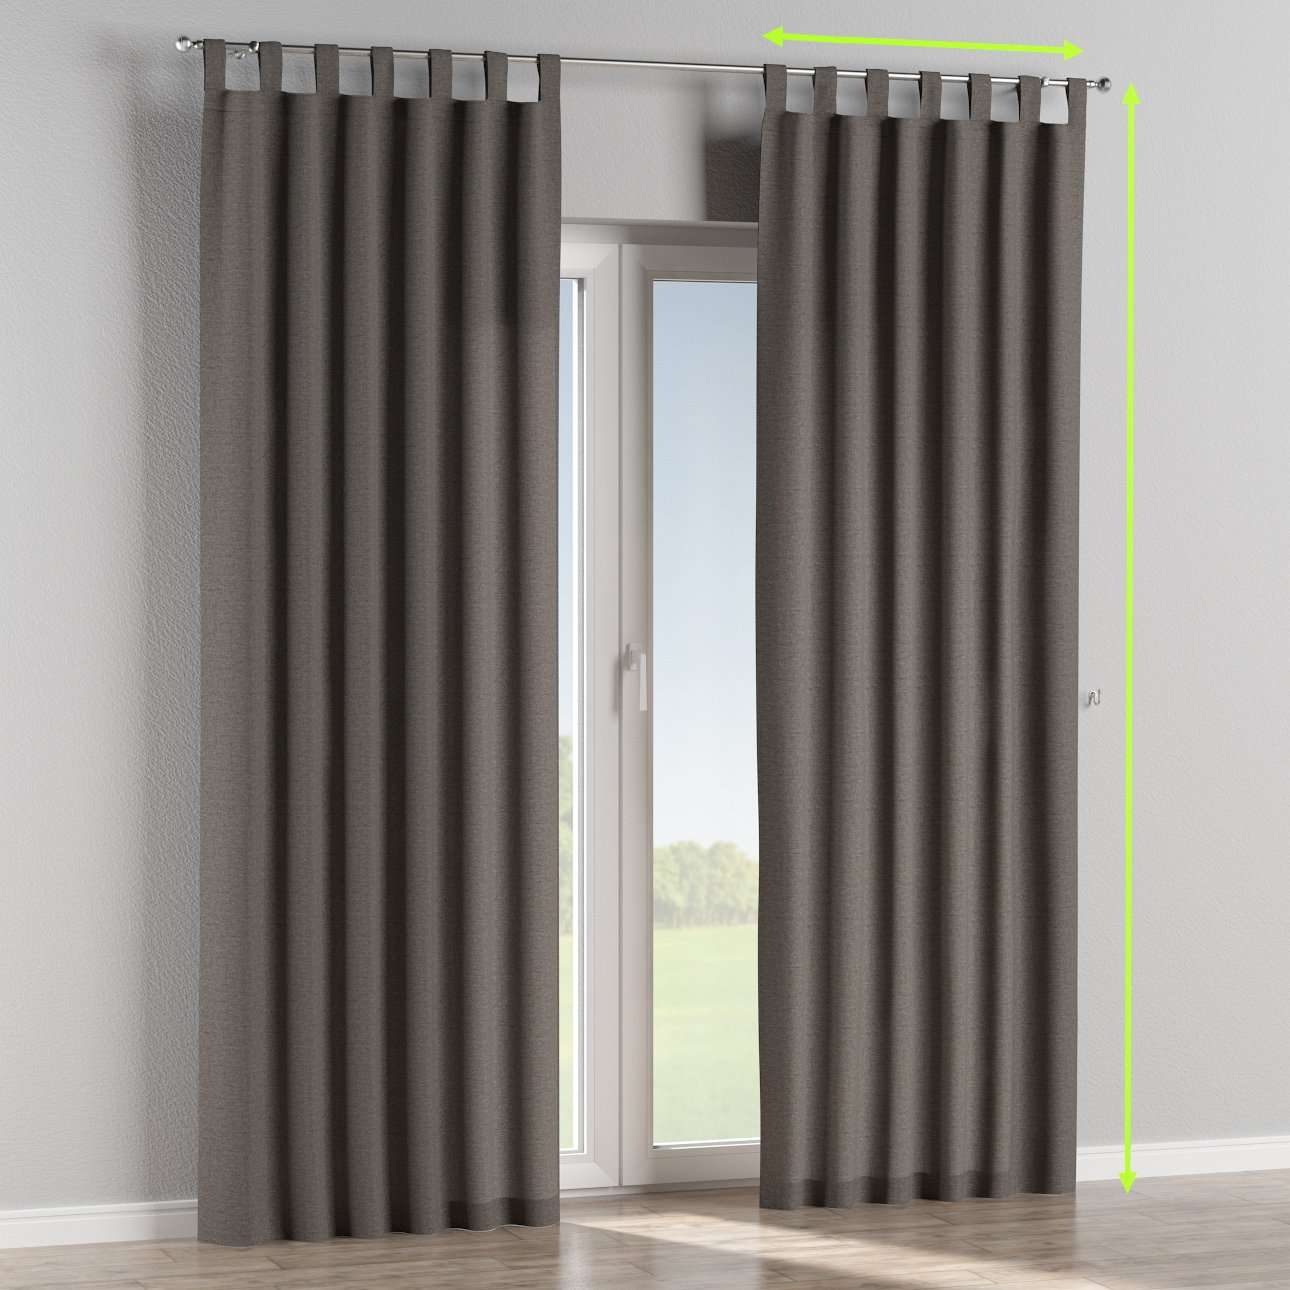 Tab top lined curtains in collection Edinburgh , fabric: 115-77